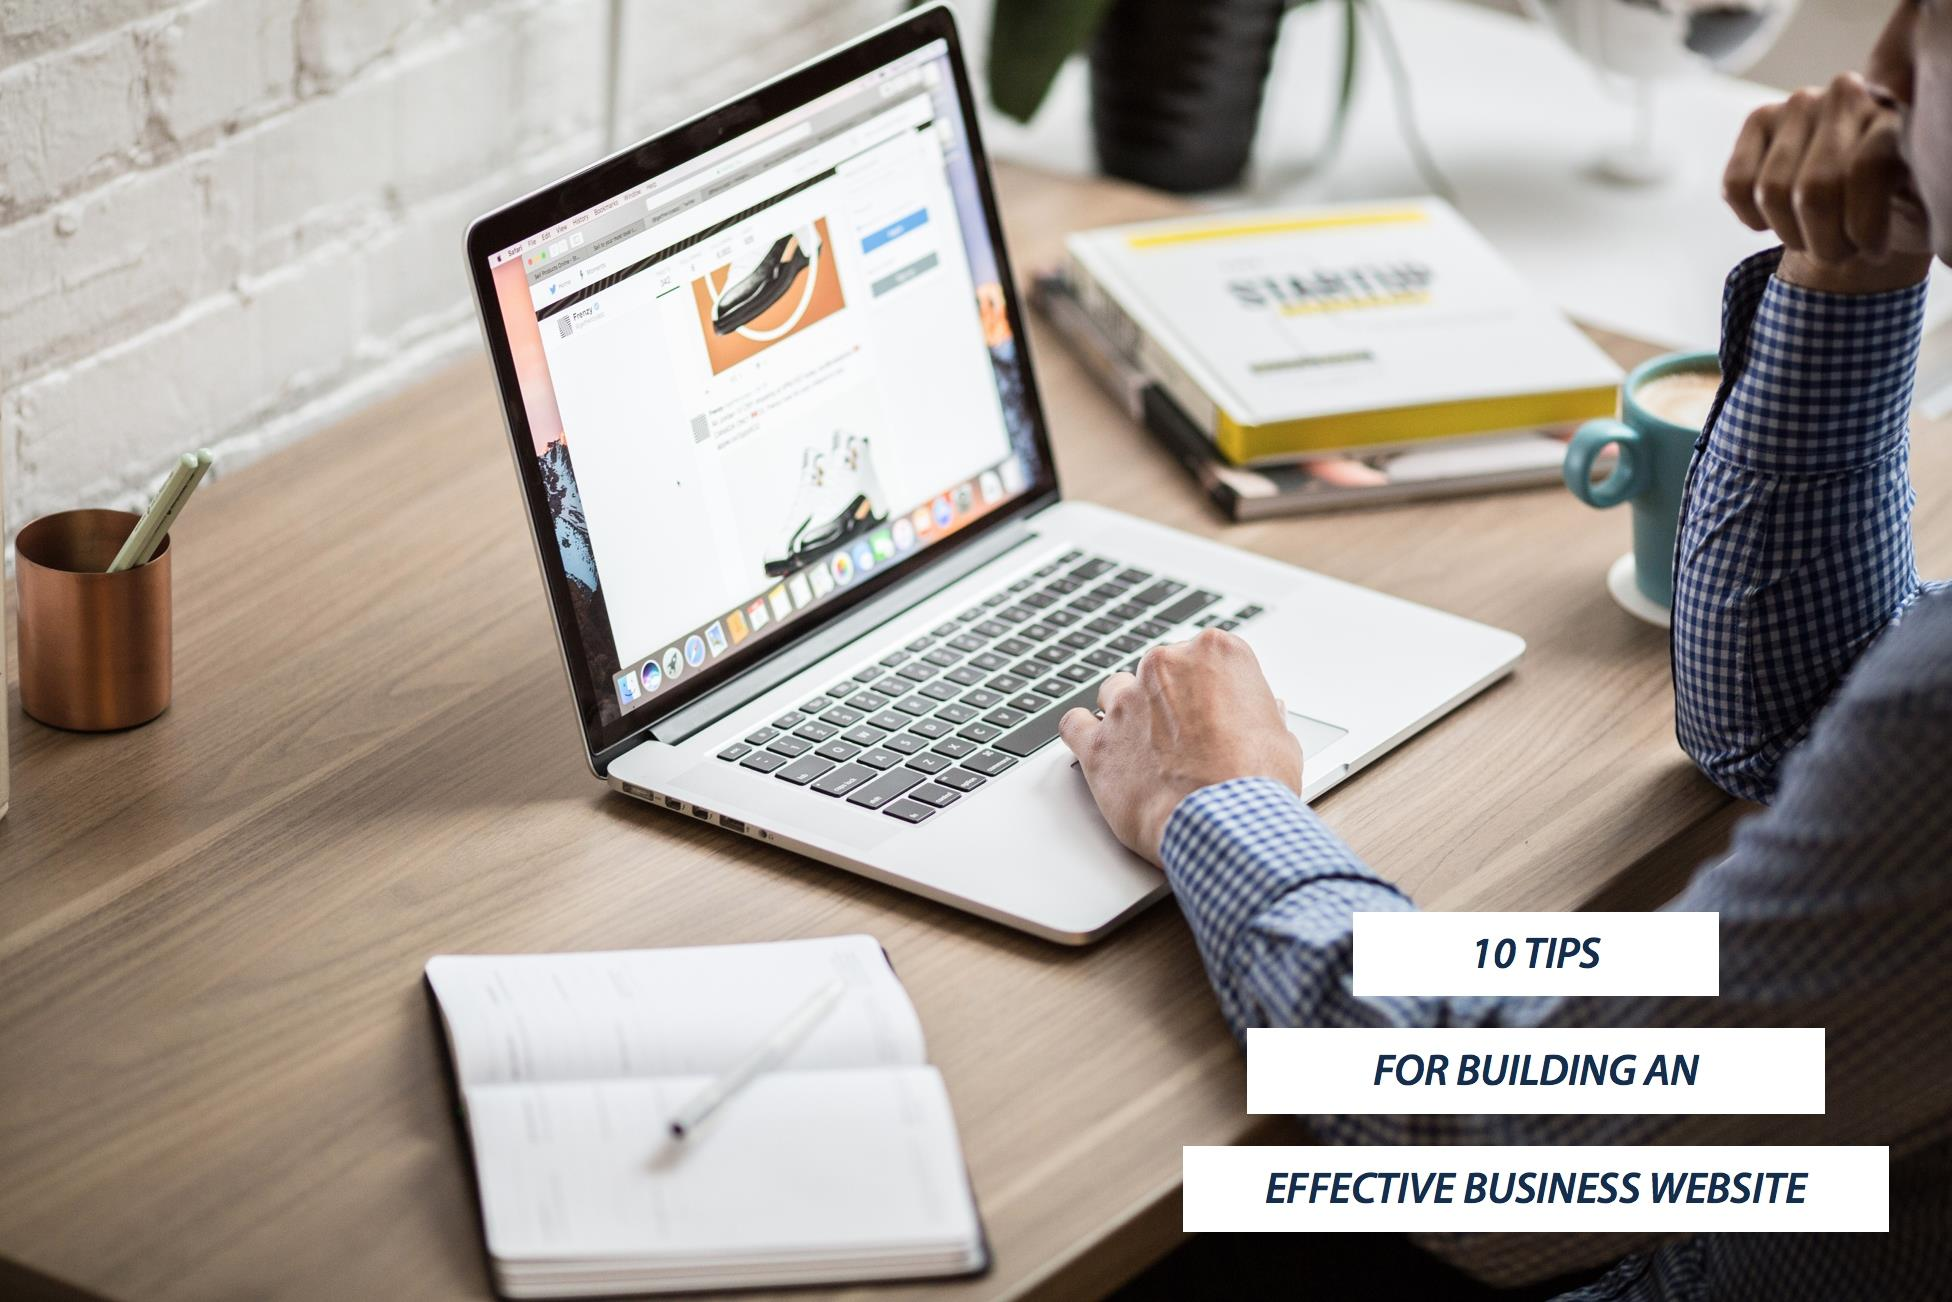 10 TIPS FOR BUILDING AN EFFECTIVE BUSINESS WEBSITE